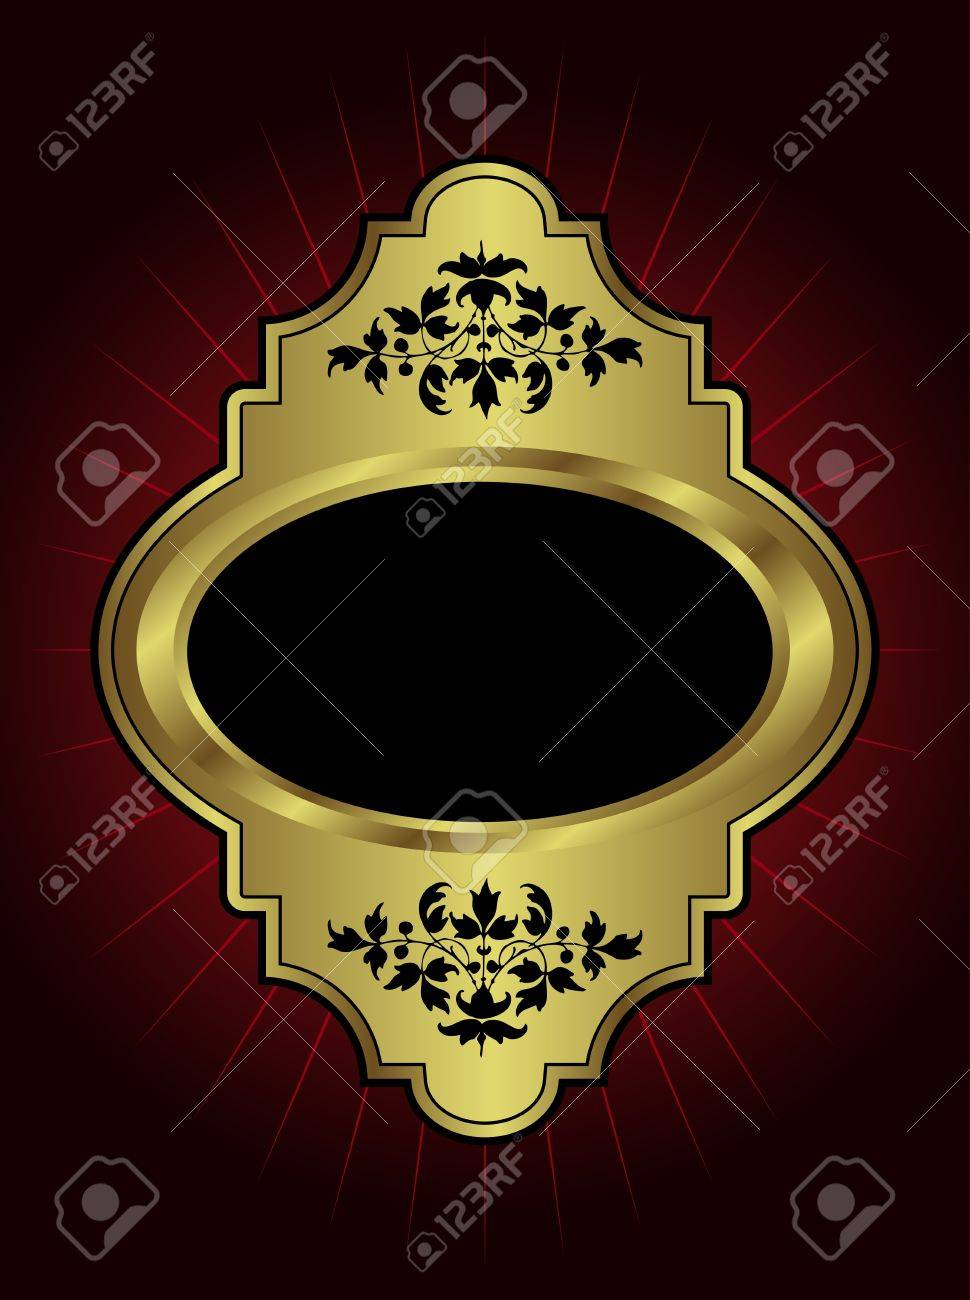 An ornate gold  plaque with room for text on a maroon highlighted background Stock Vector - 13708053